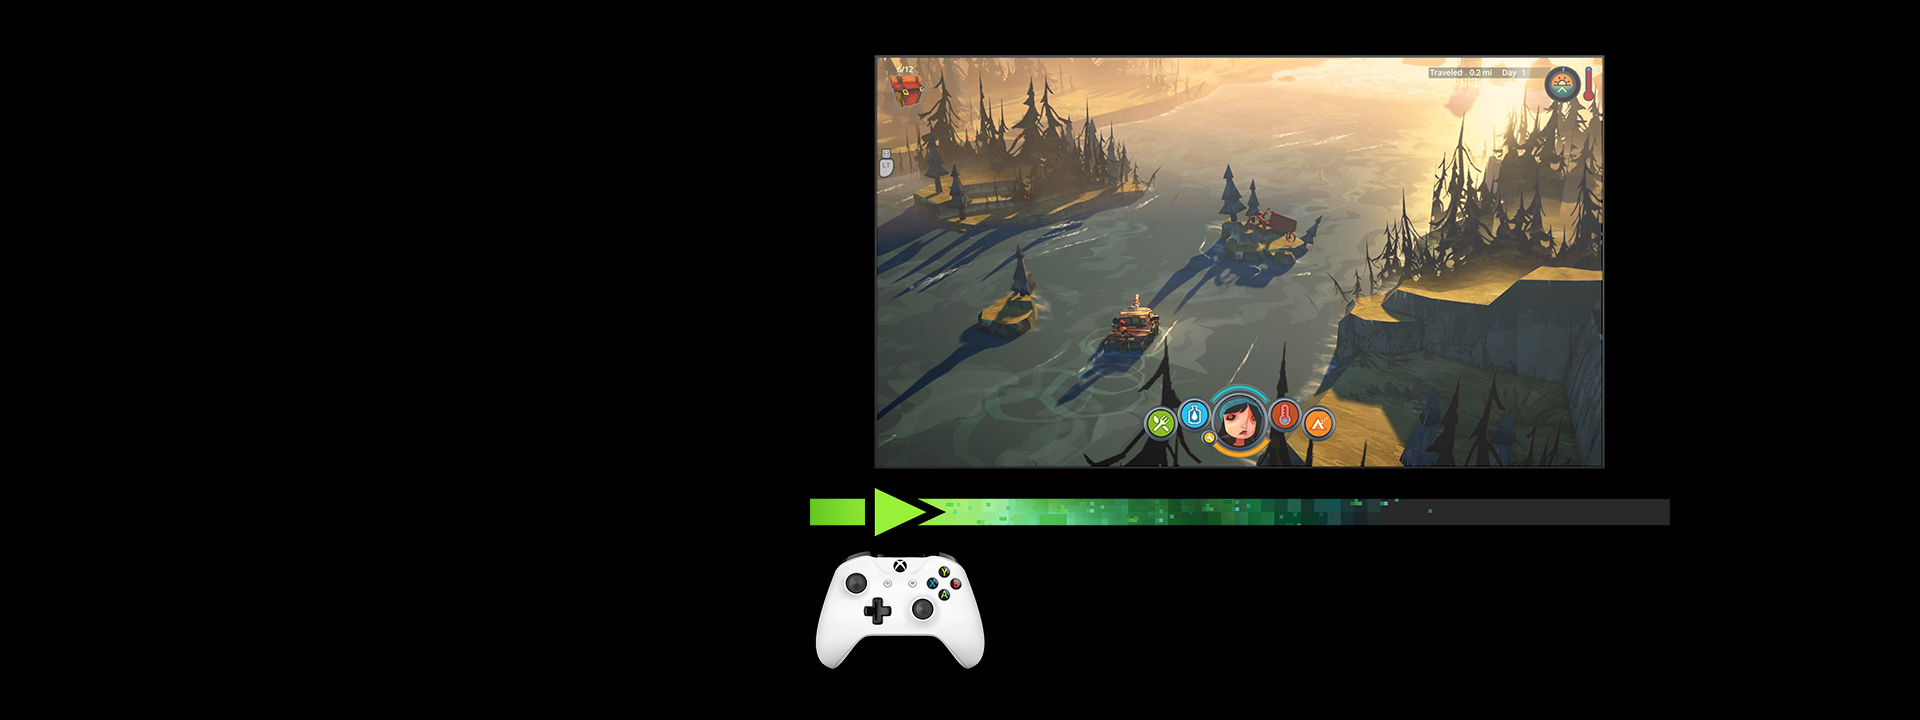 Screenshot of the game the Flame in the Flood inside a TV screen with a white Xbox controller